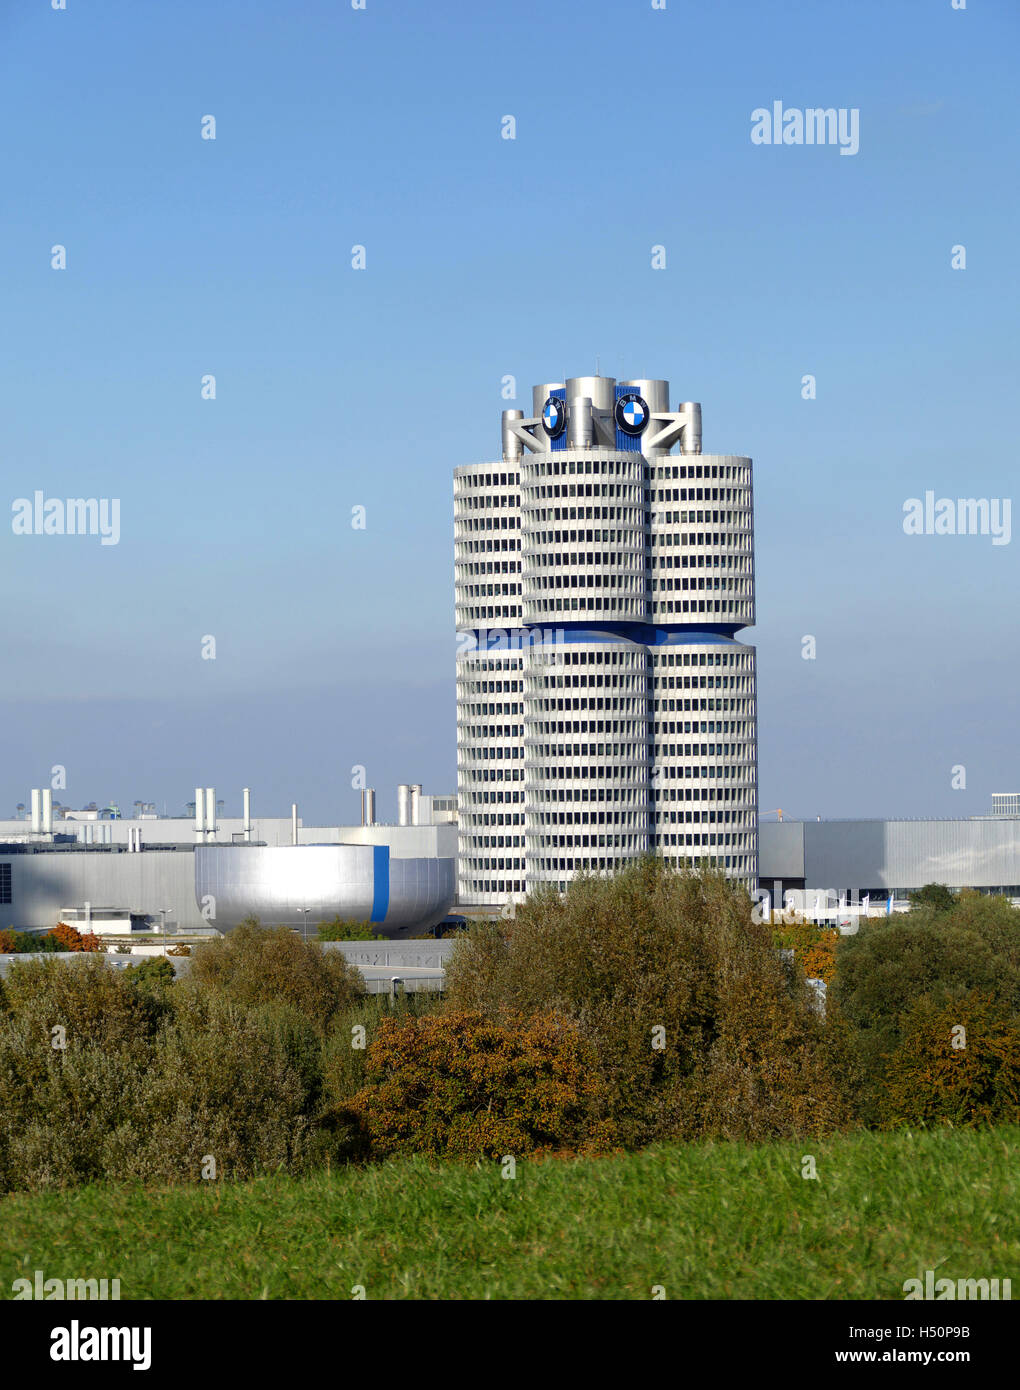 Car Manufacture Stock Photos Amp Car Manufacture Stock Images Alamy